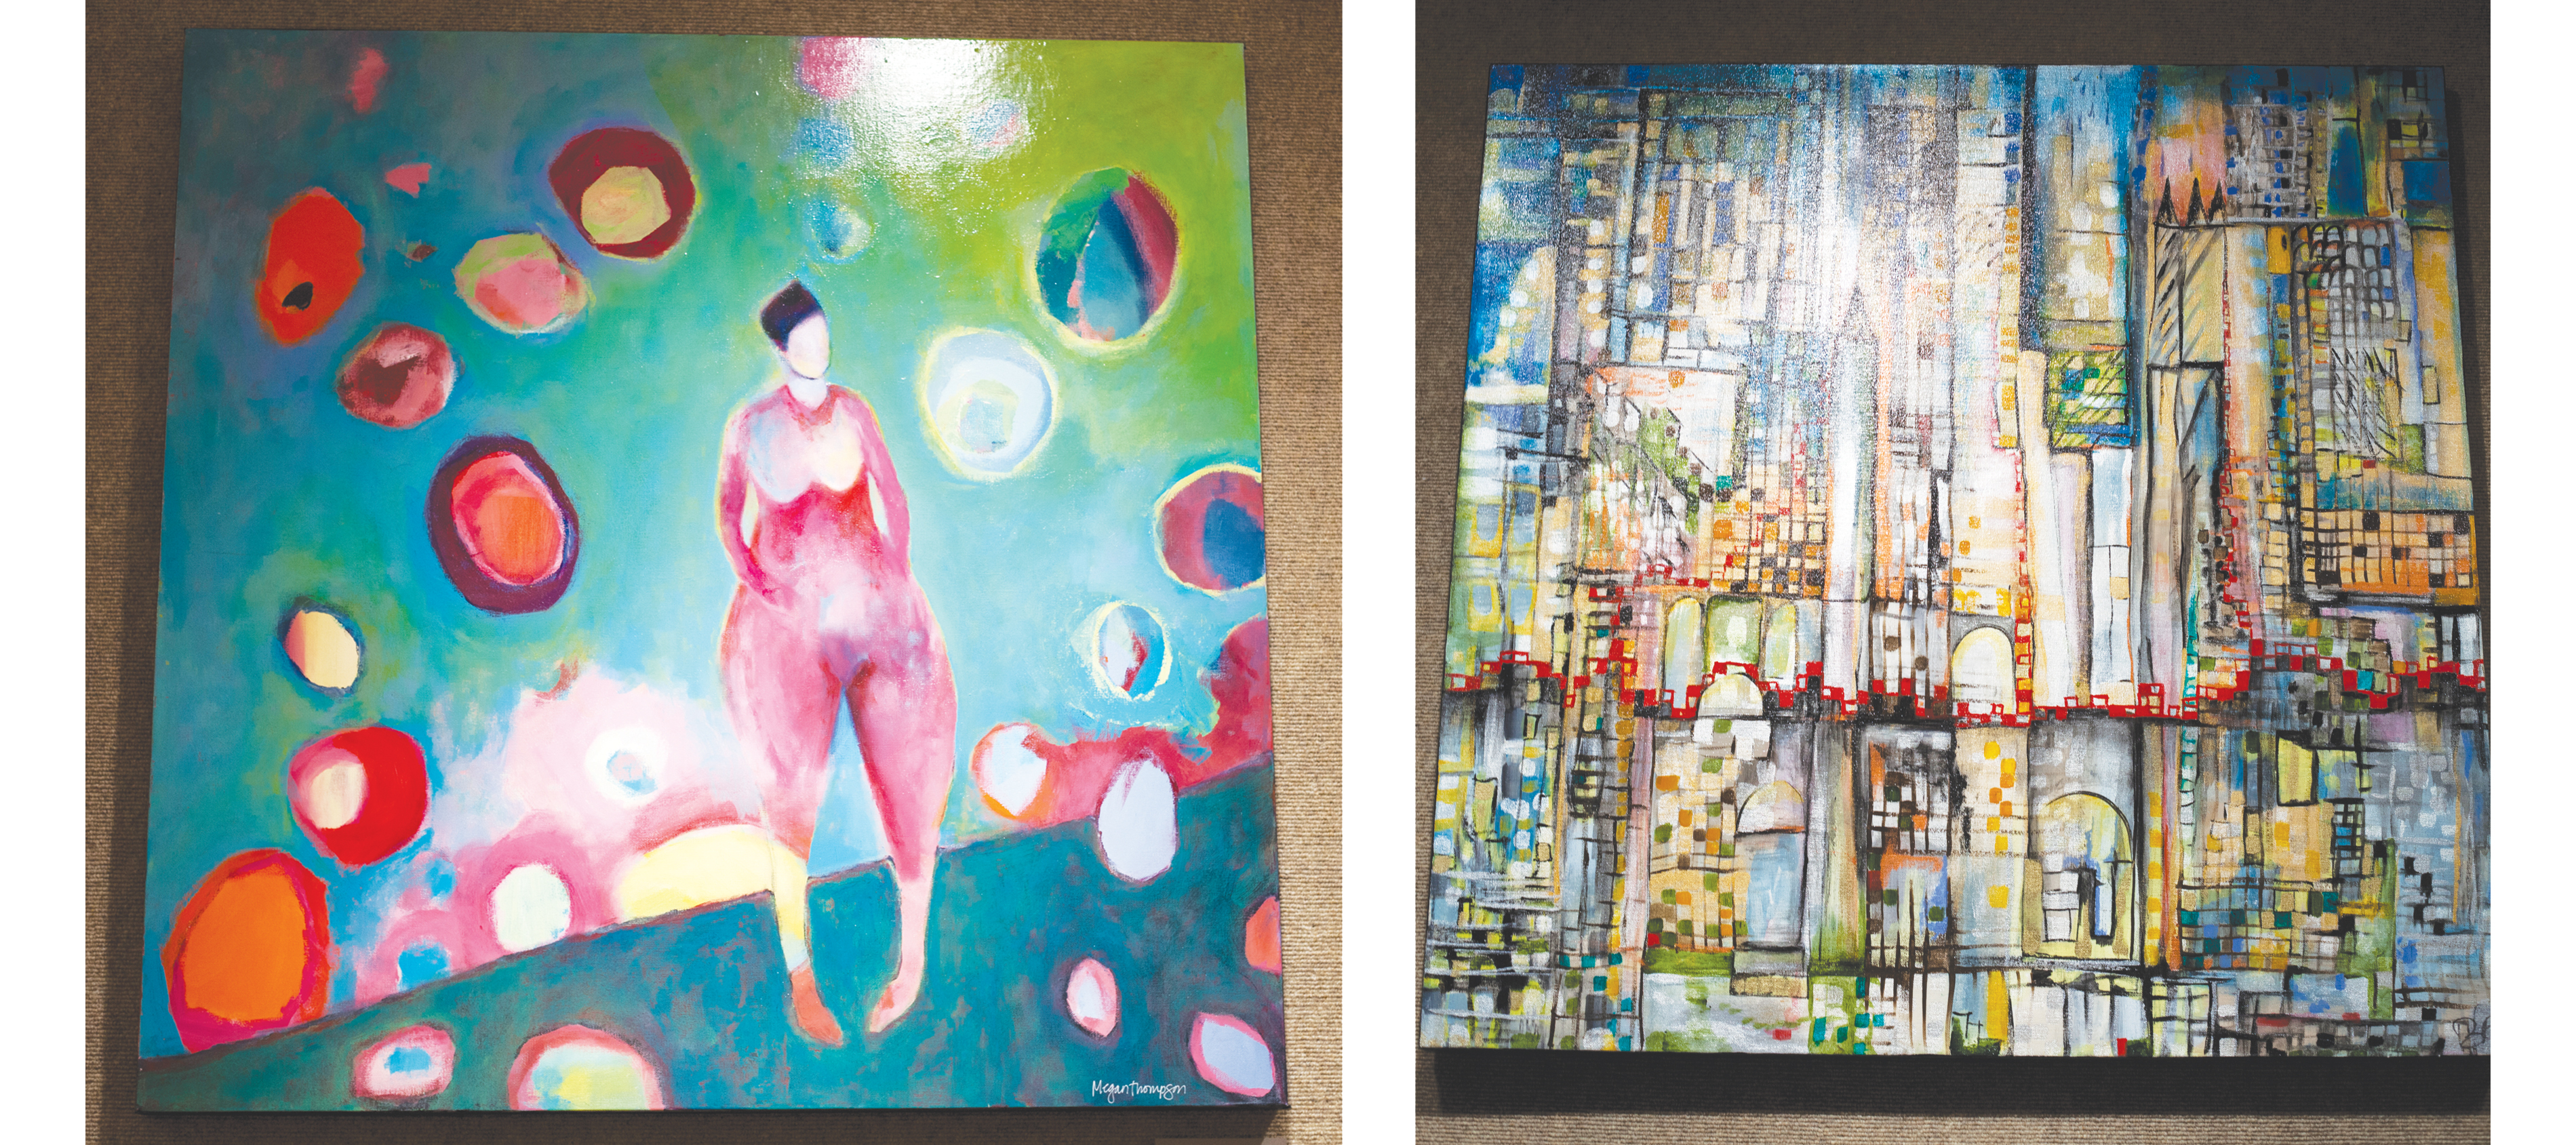 Left: Eltit by Zudo Nihn, Right: Wanderlust by Megan Thompson | Photos by Vince Domingo